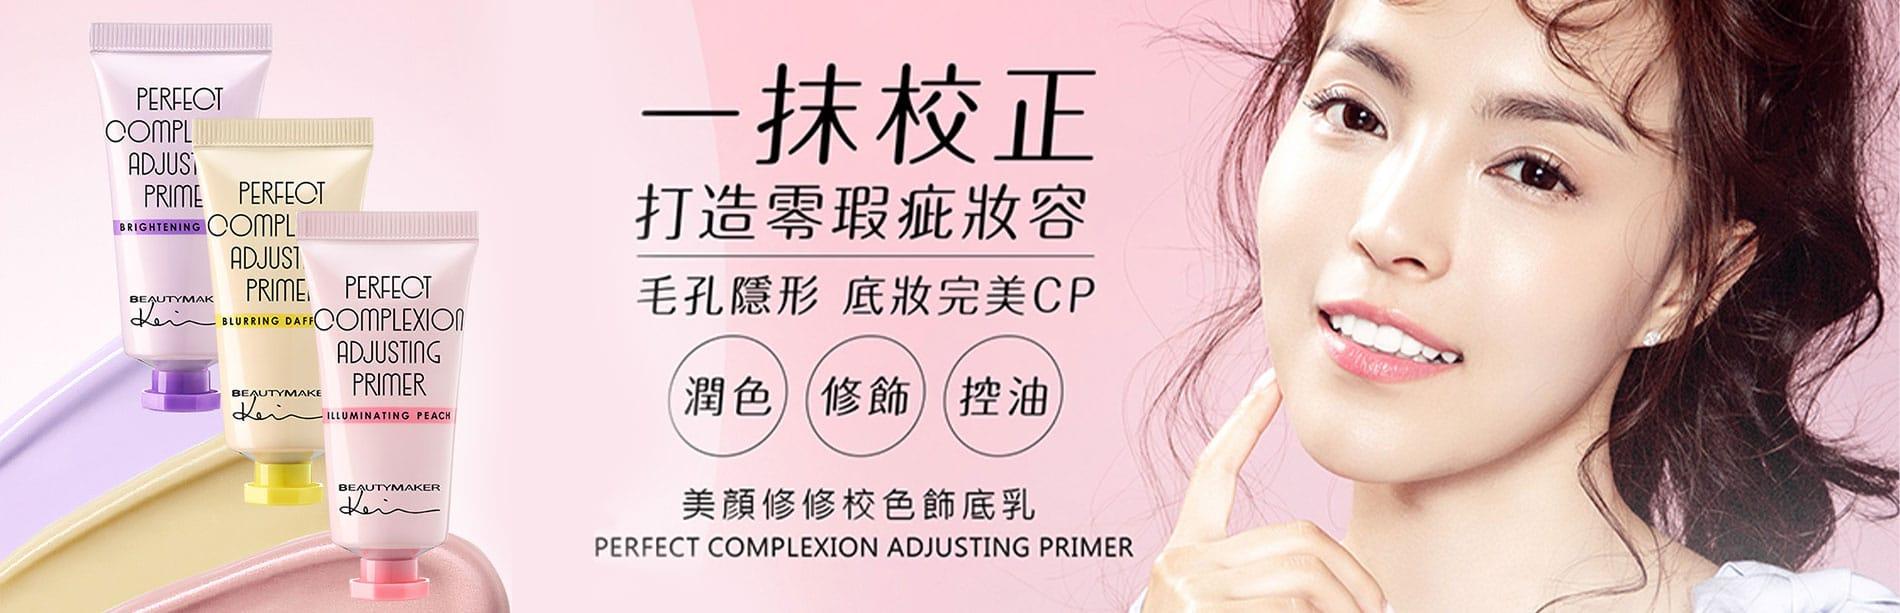 Perfect-Complexion-Adjusting-Primer-New-Arrival-theme banner